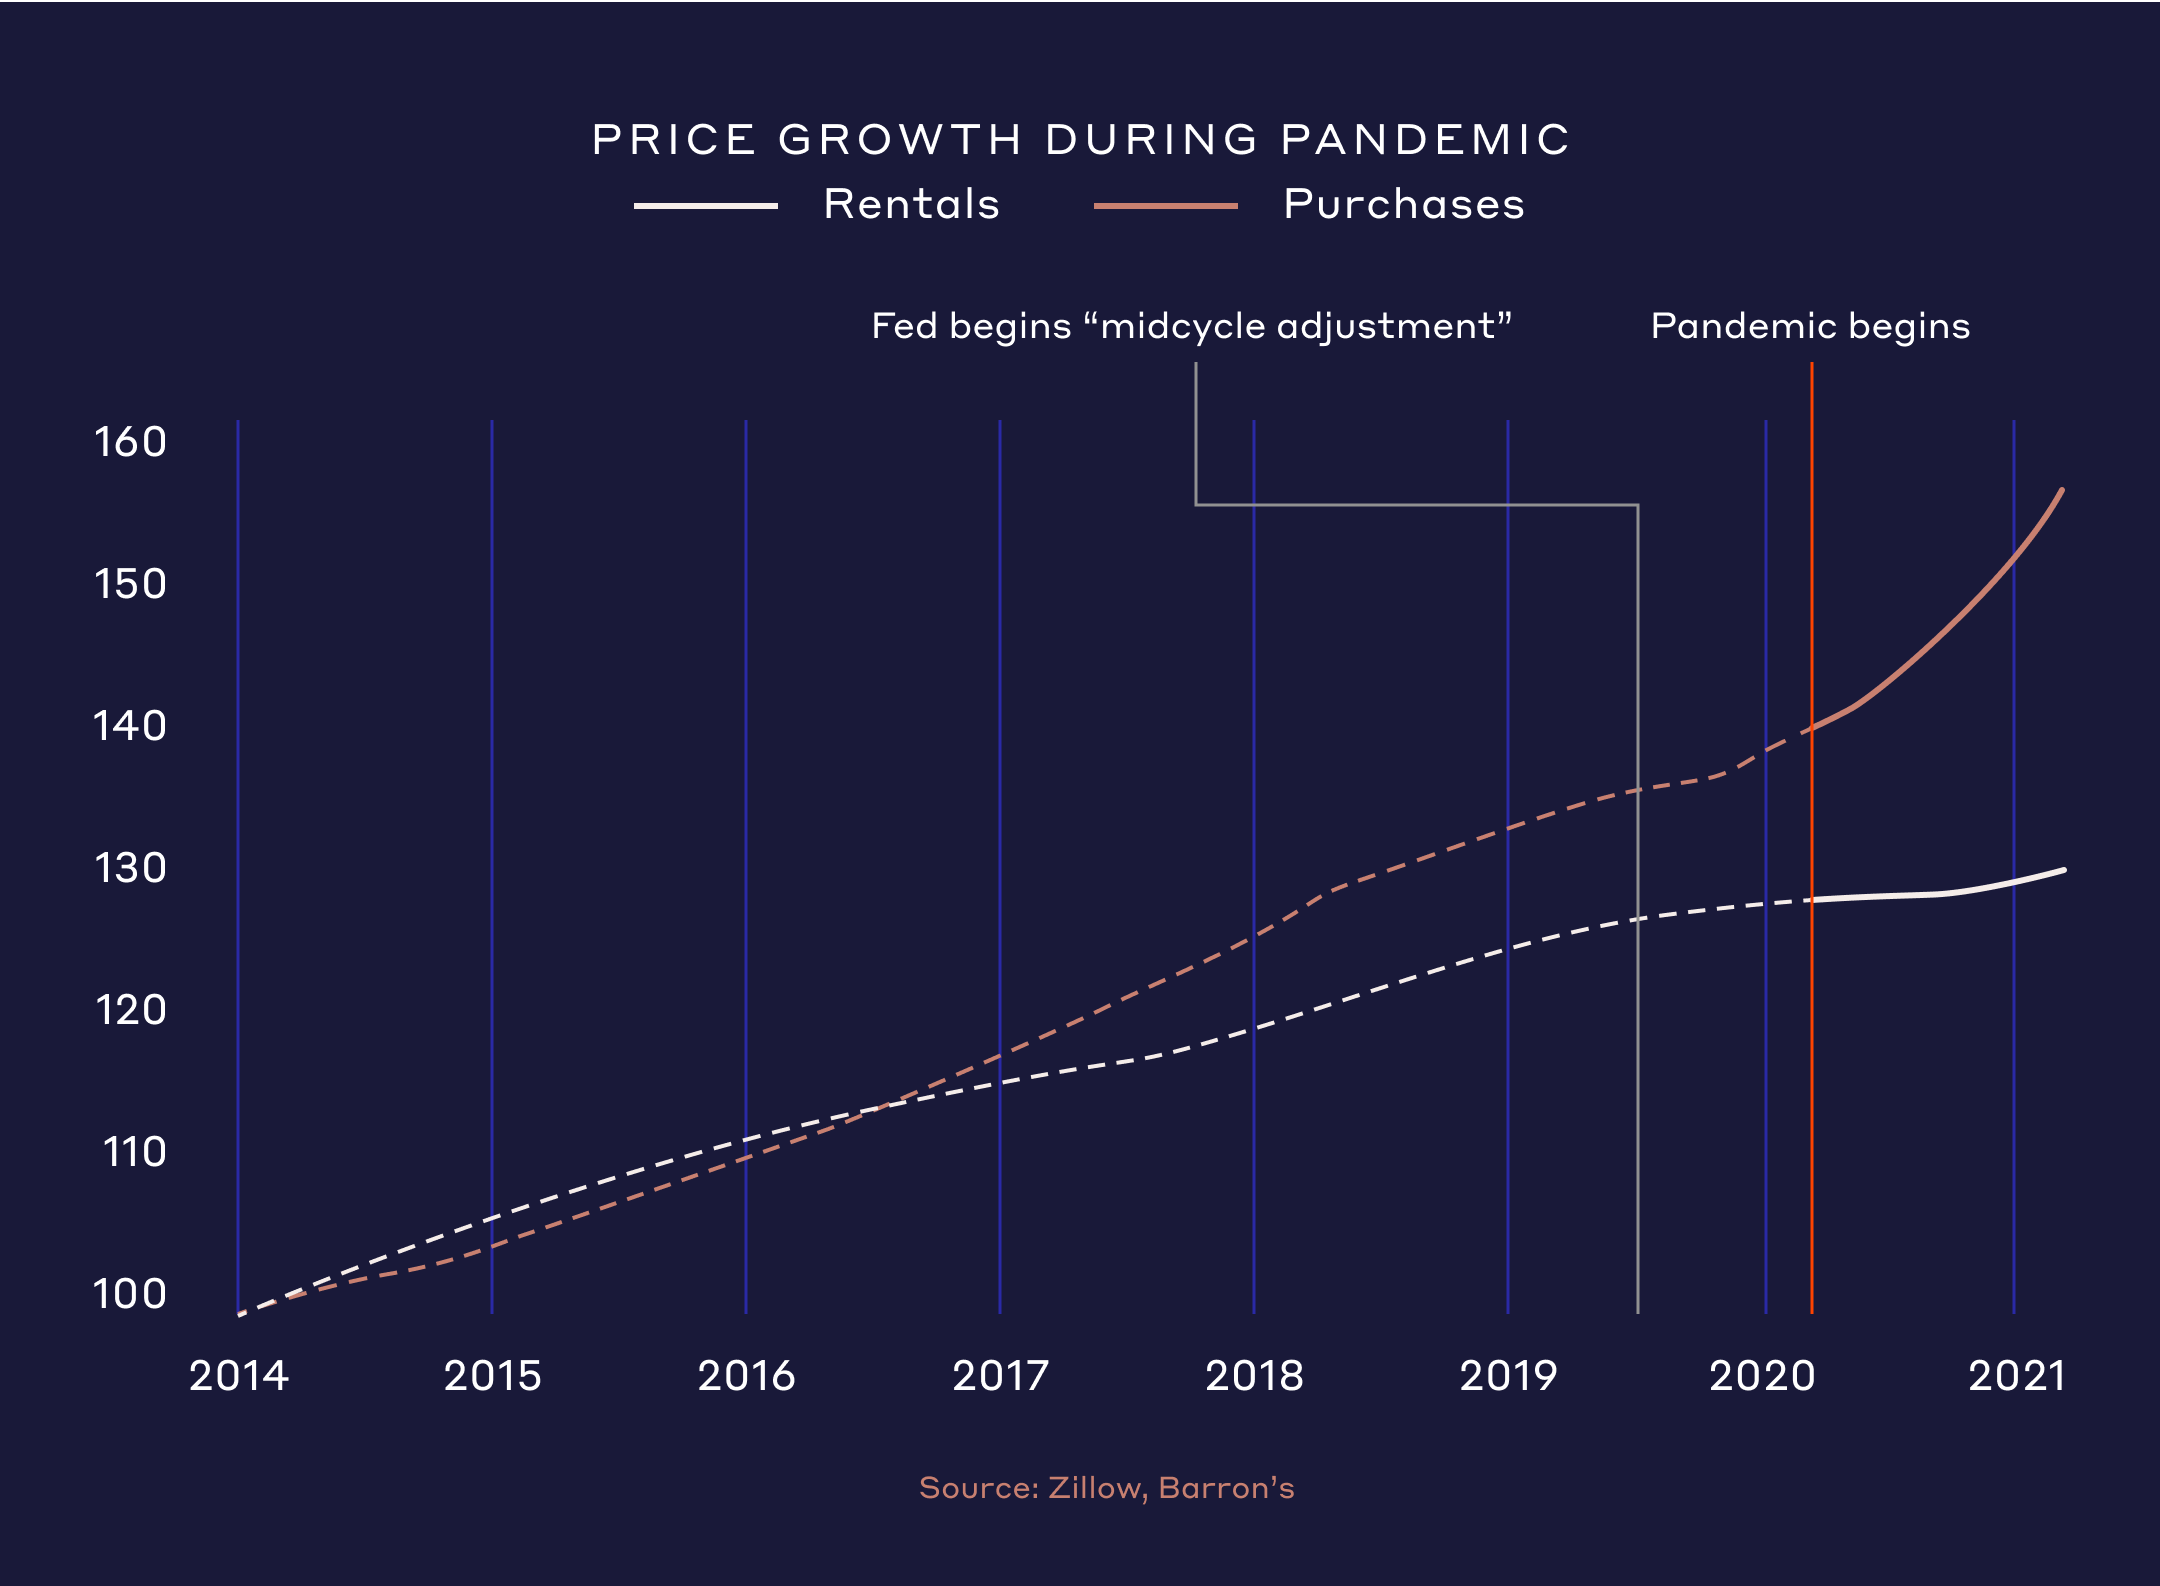 Price growth during pandemic